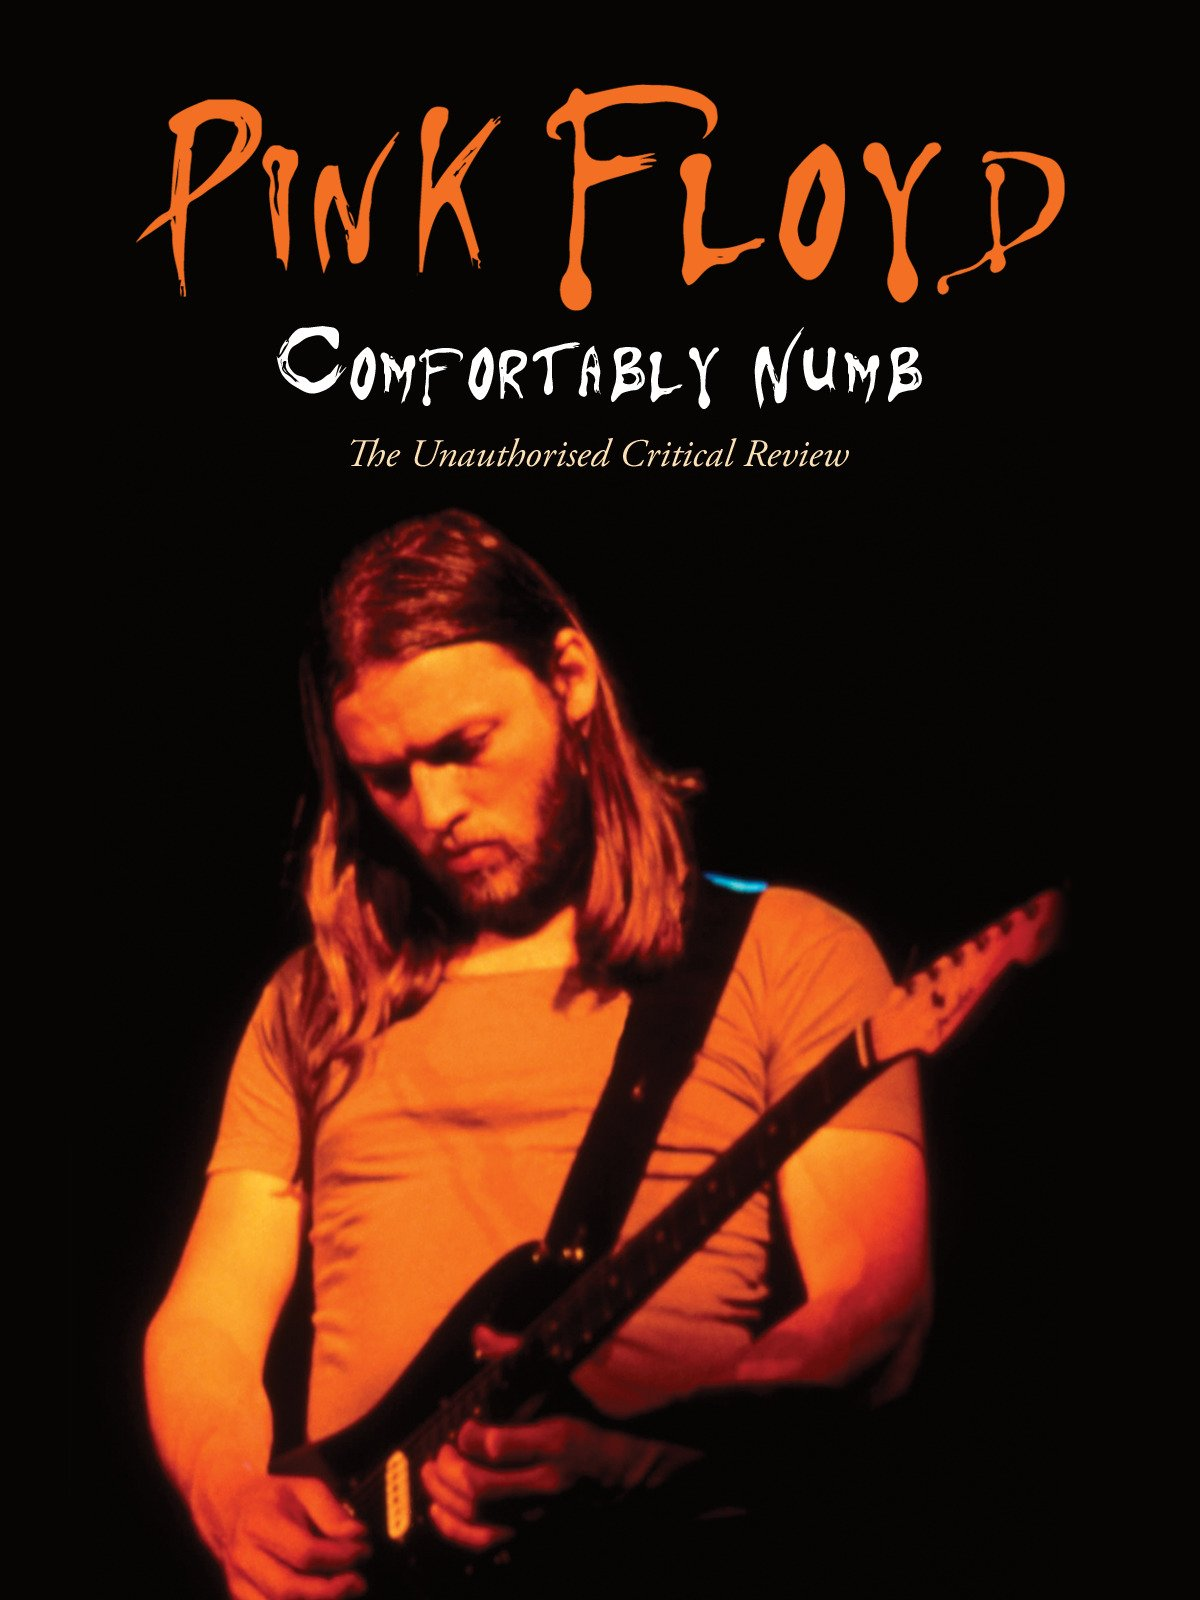 Amazon com: Watch Pink Floyd - Comfortably Numb | Prime Video